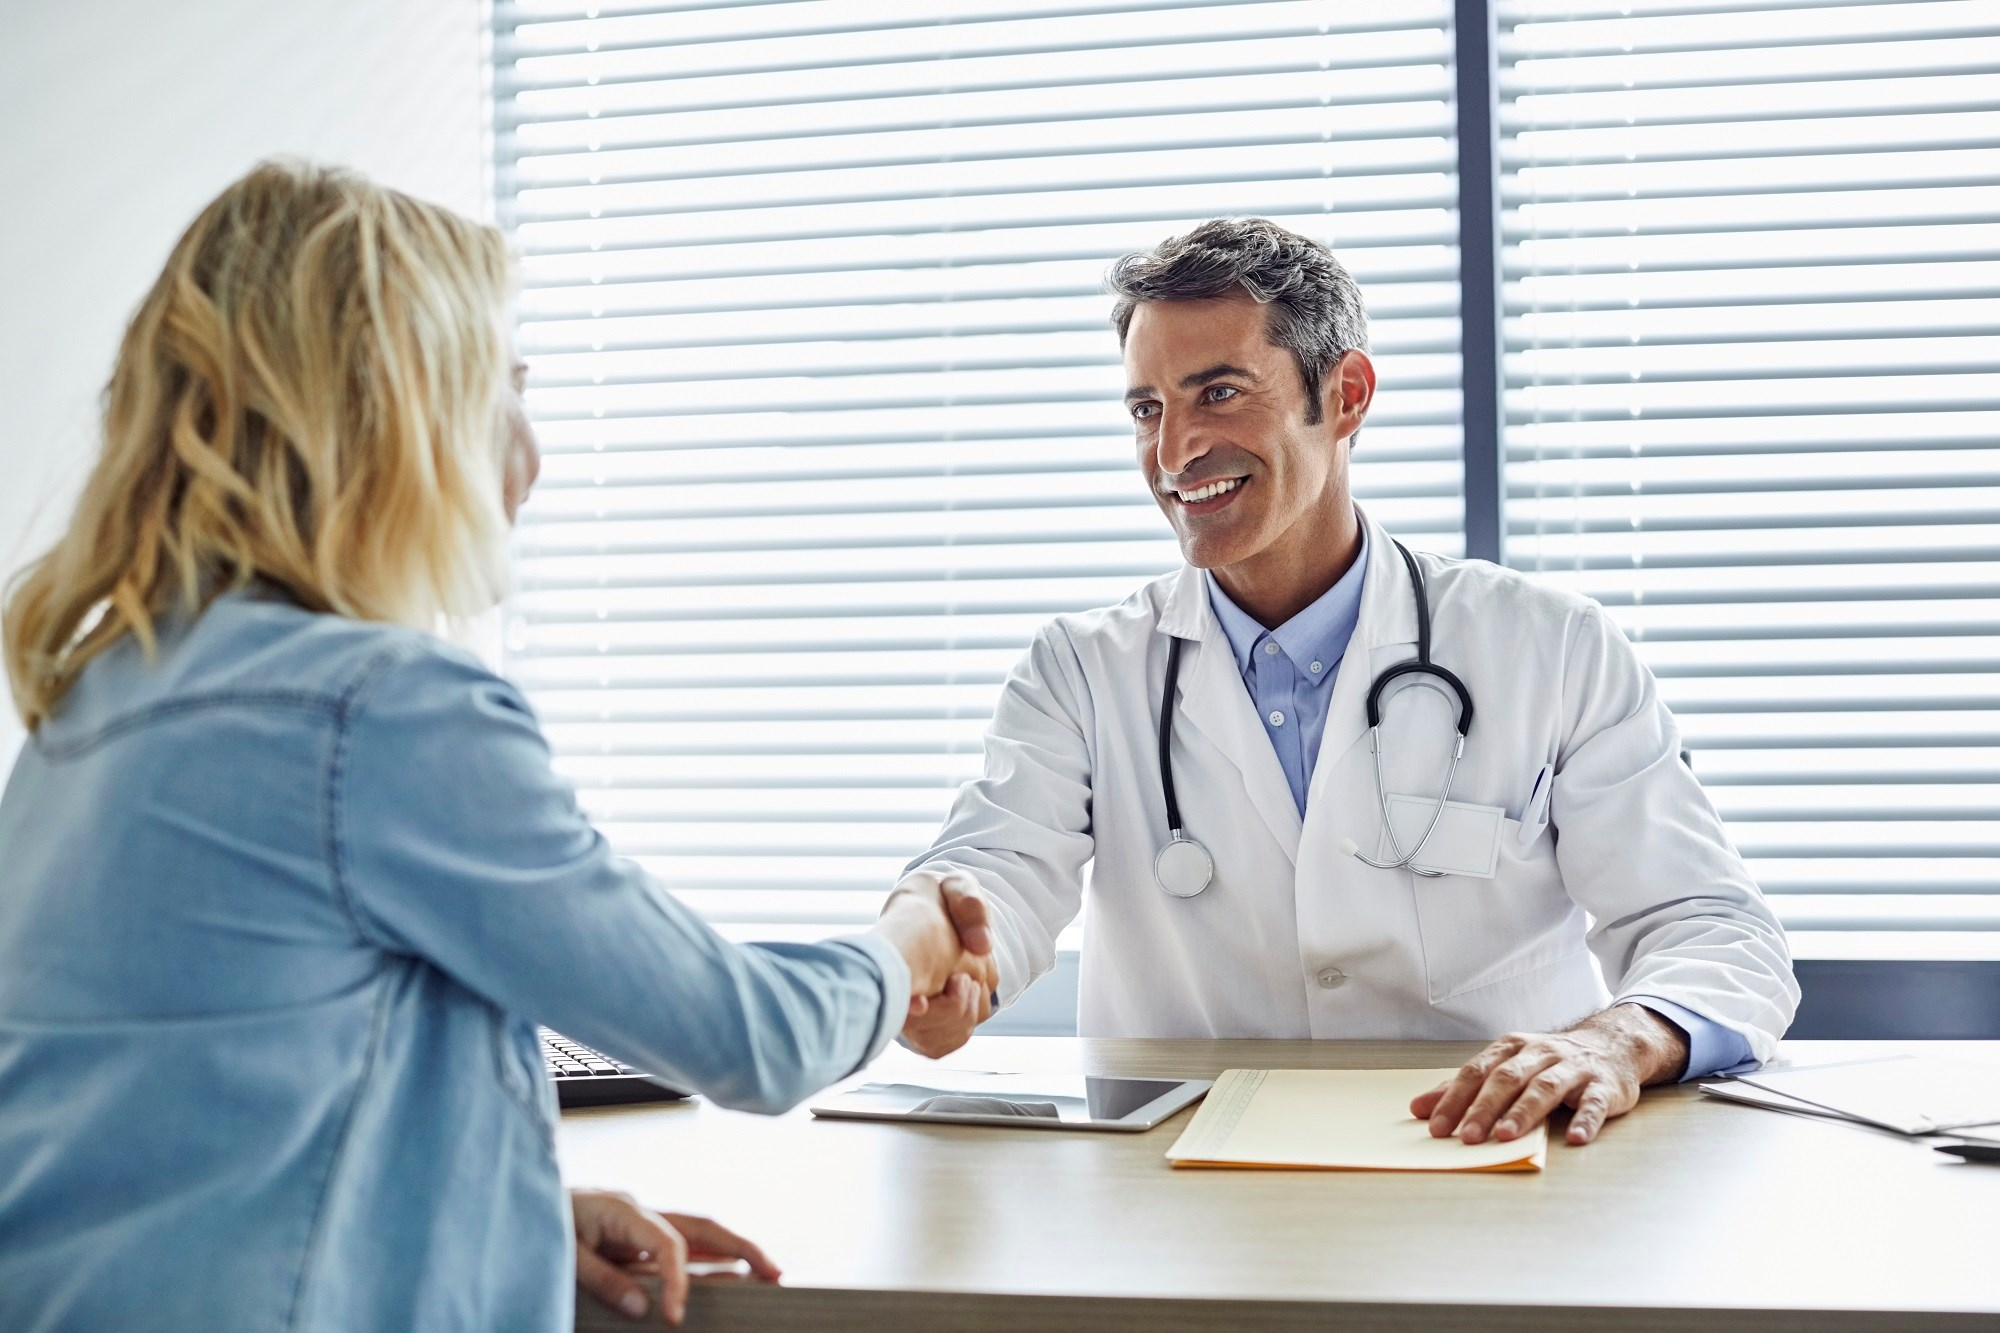 Physician-Patient Relationships: The Benefits of Long-Term Medical Practice